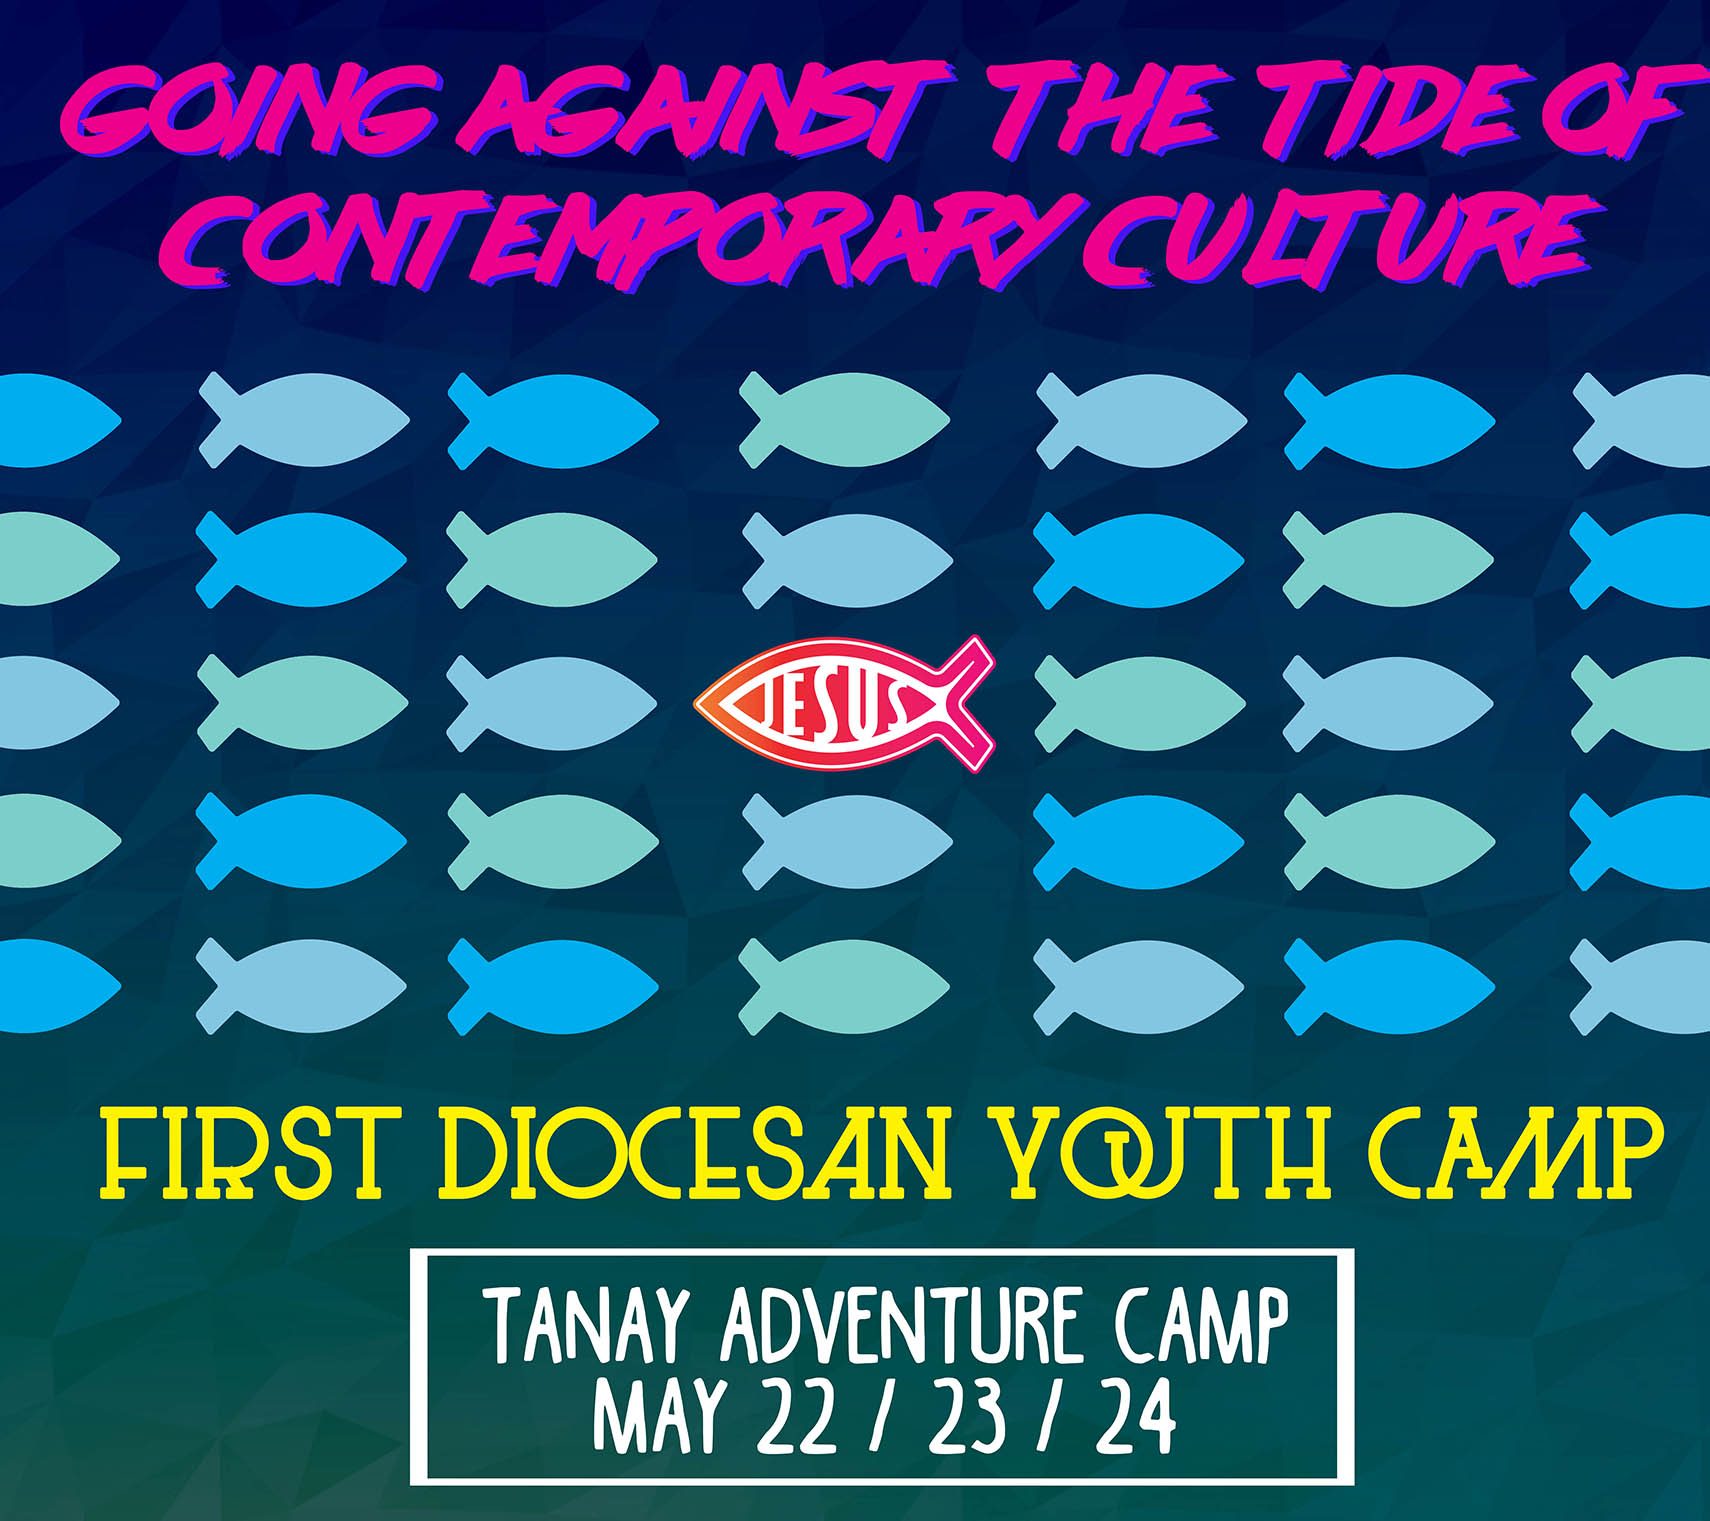 1st Diocesan Youth Camp: Going Against the Tide of Contemporary Culture